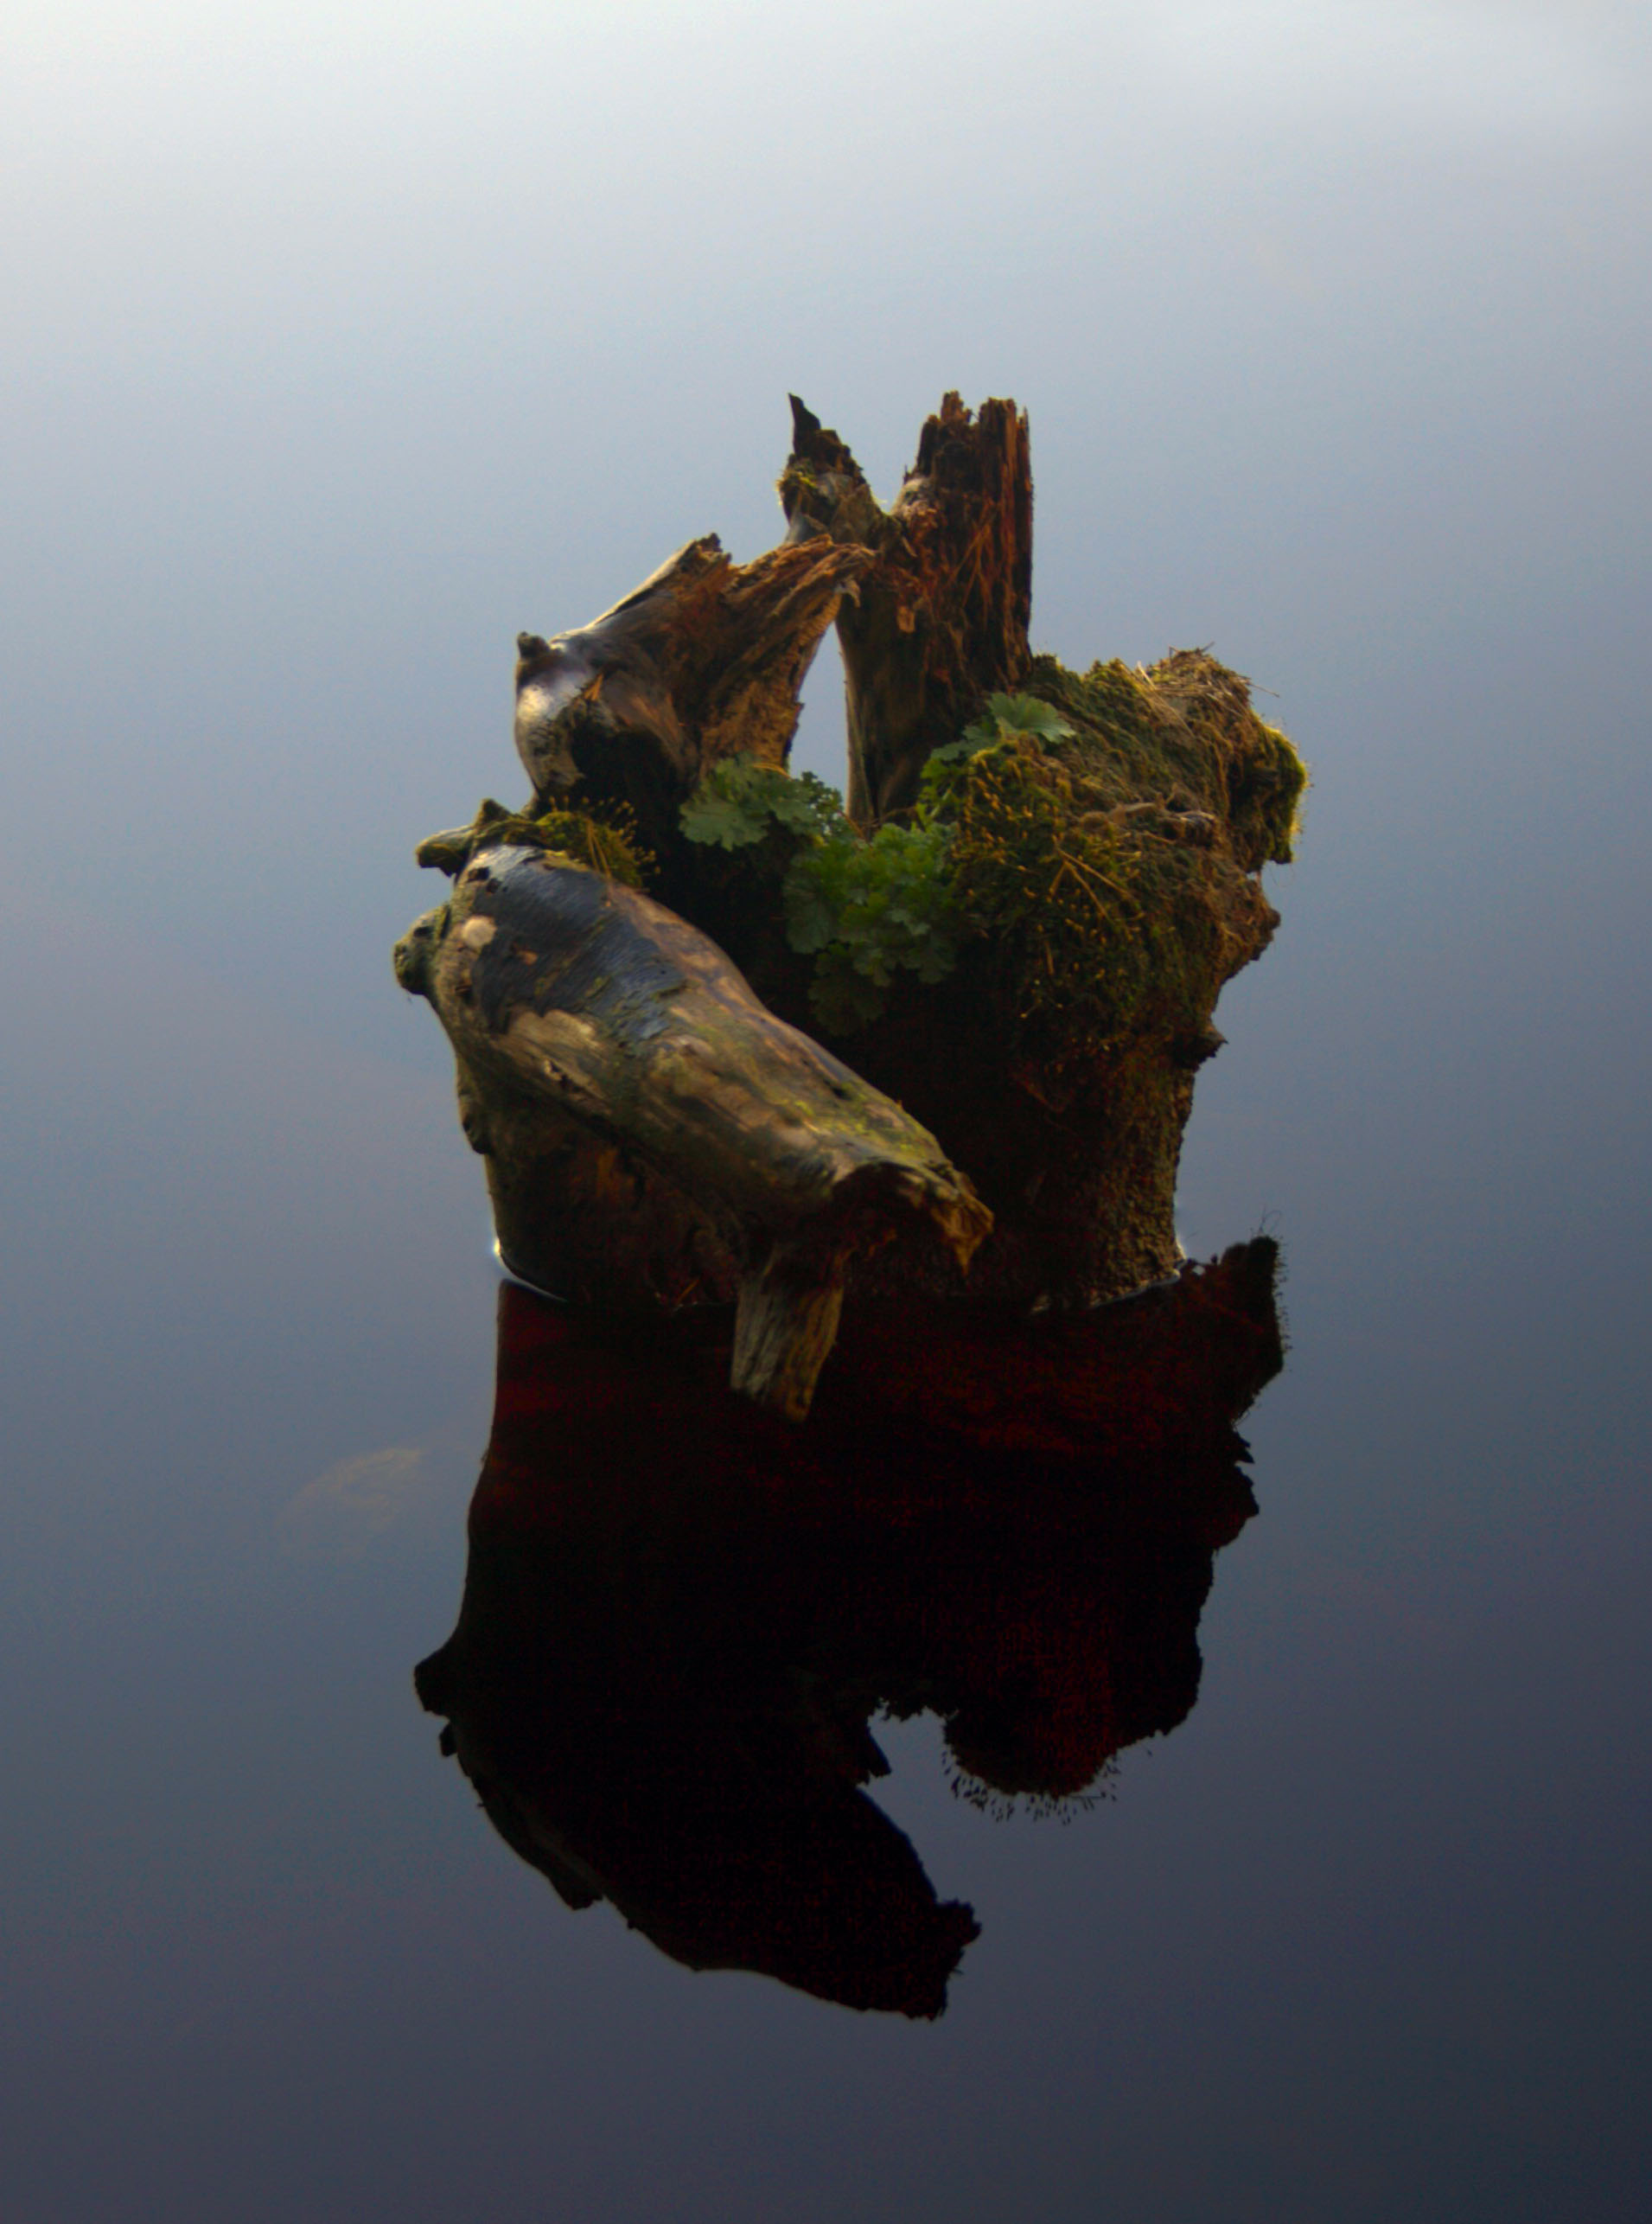 Exposed stump in water